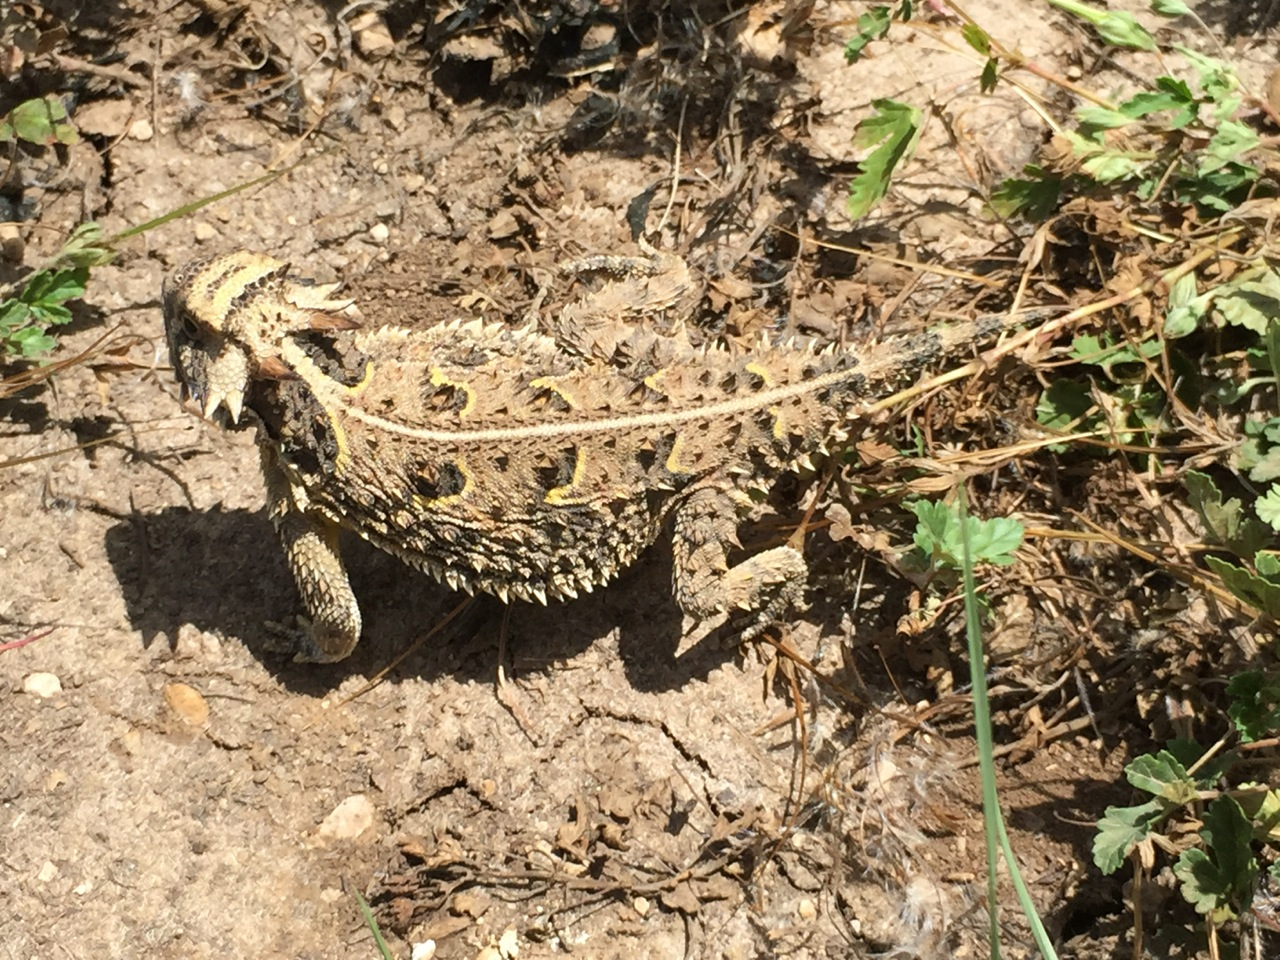 Horned Toad 6-23-15 - We See HT's Regularly!!!